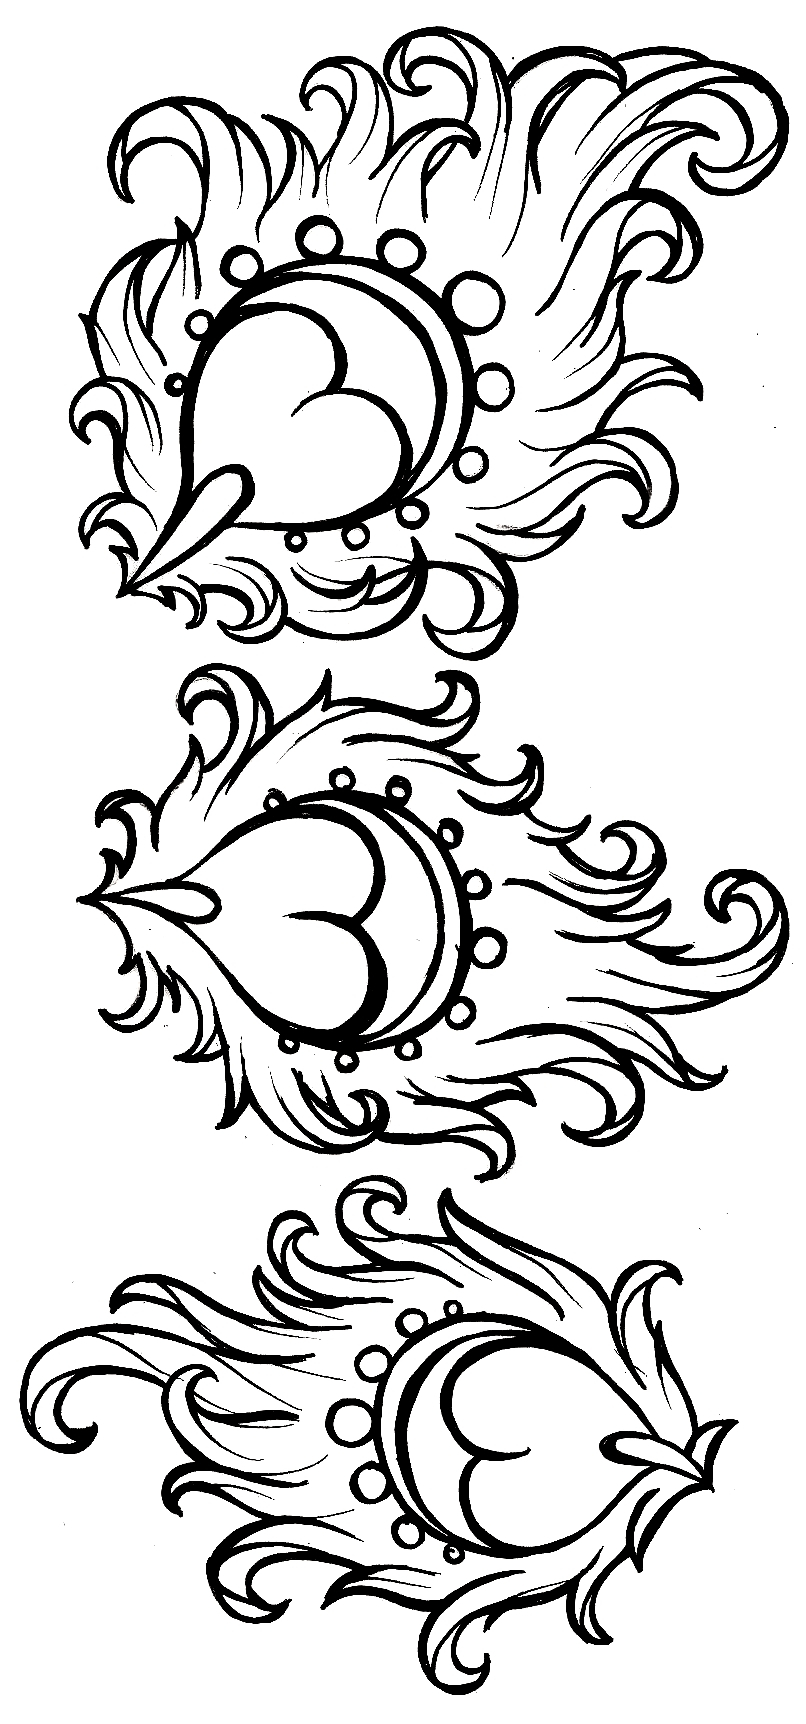 Peacock Color Page Coloring Pages Of A Peacock At Getdrawings Free For Personal